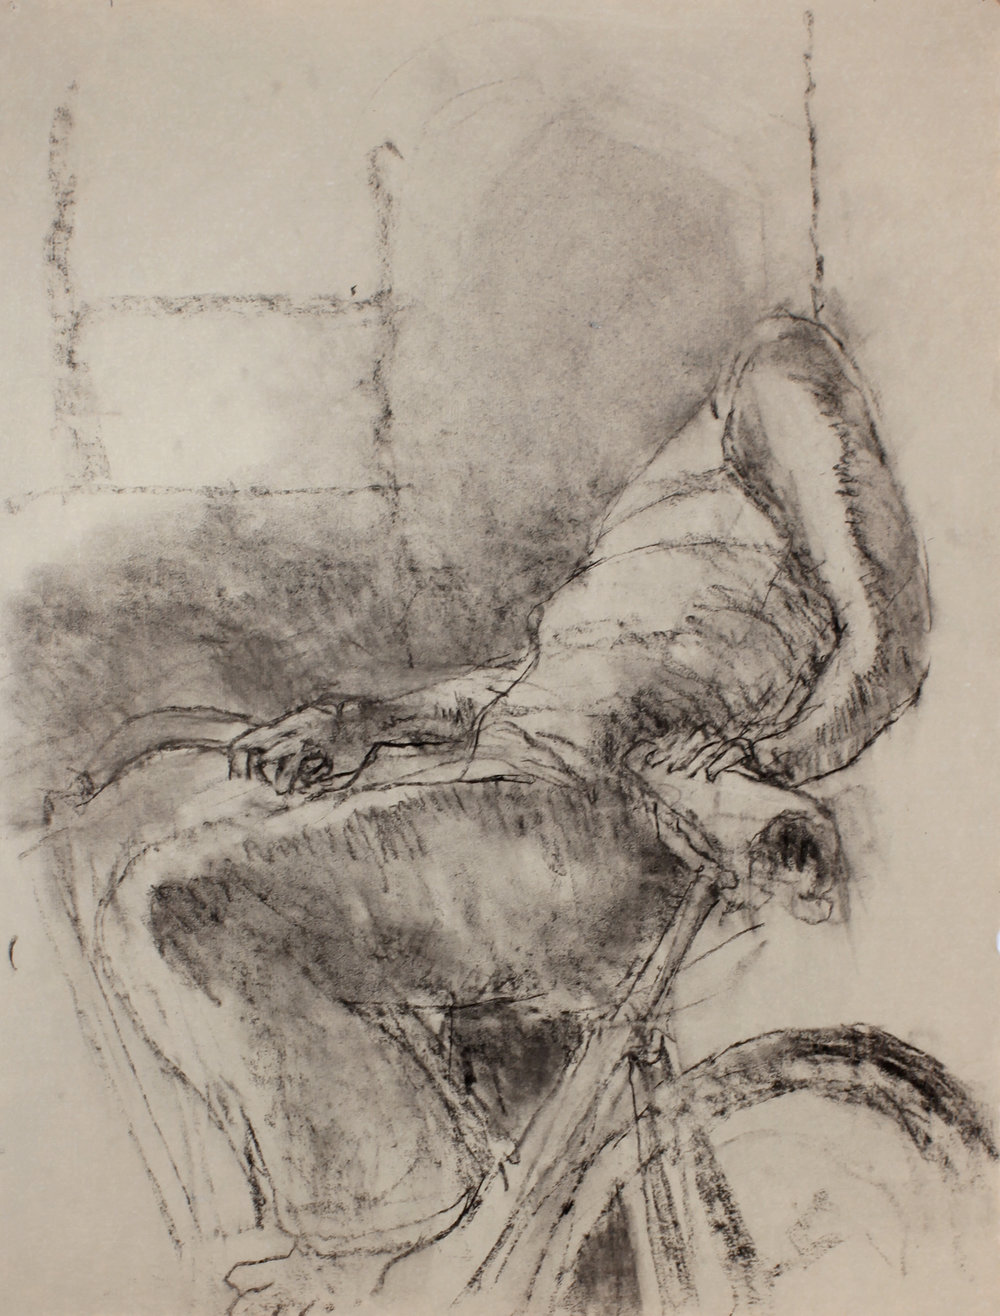 1999_Figure_on_Bicycle_charcoal_on_paper_24x18in_WPF451.jpg